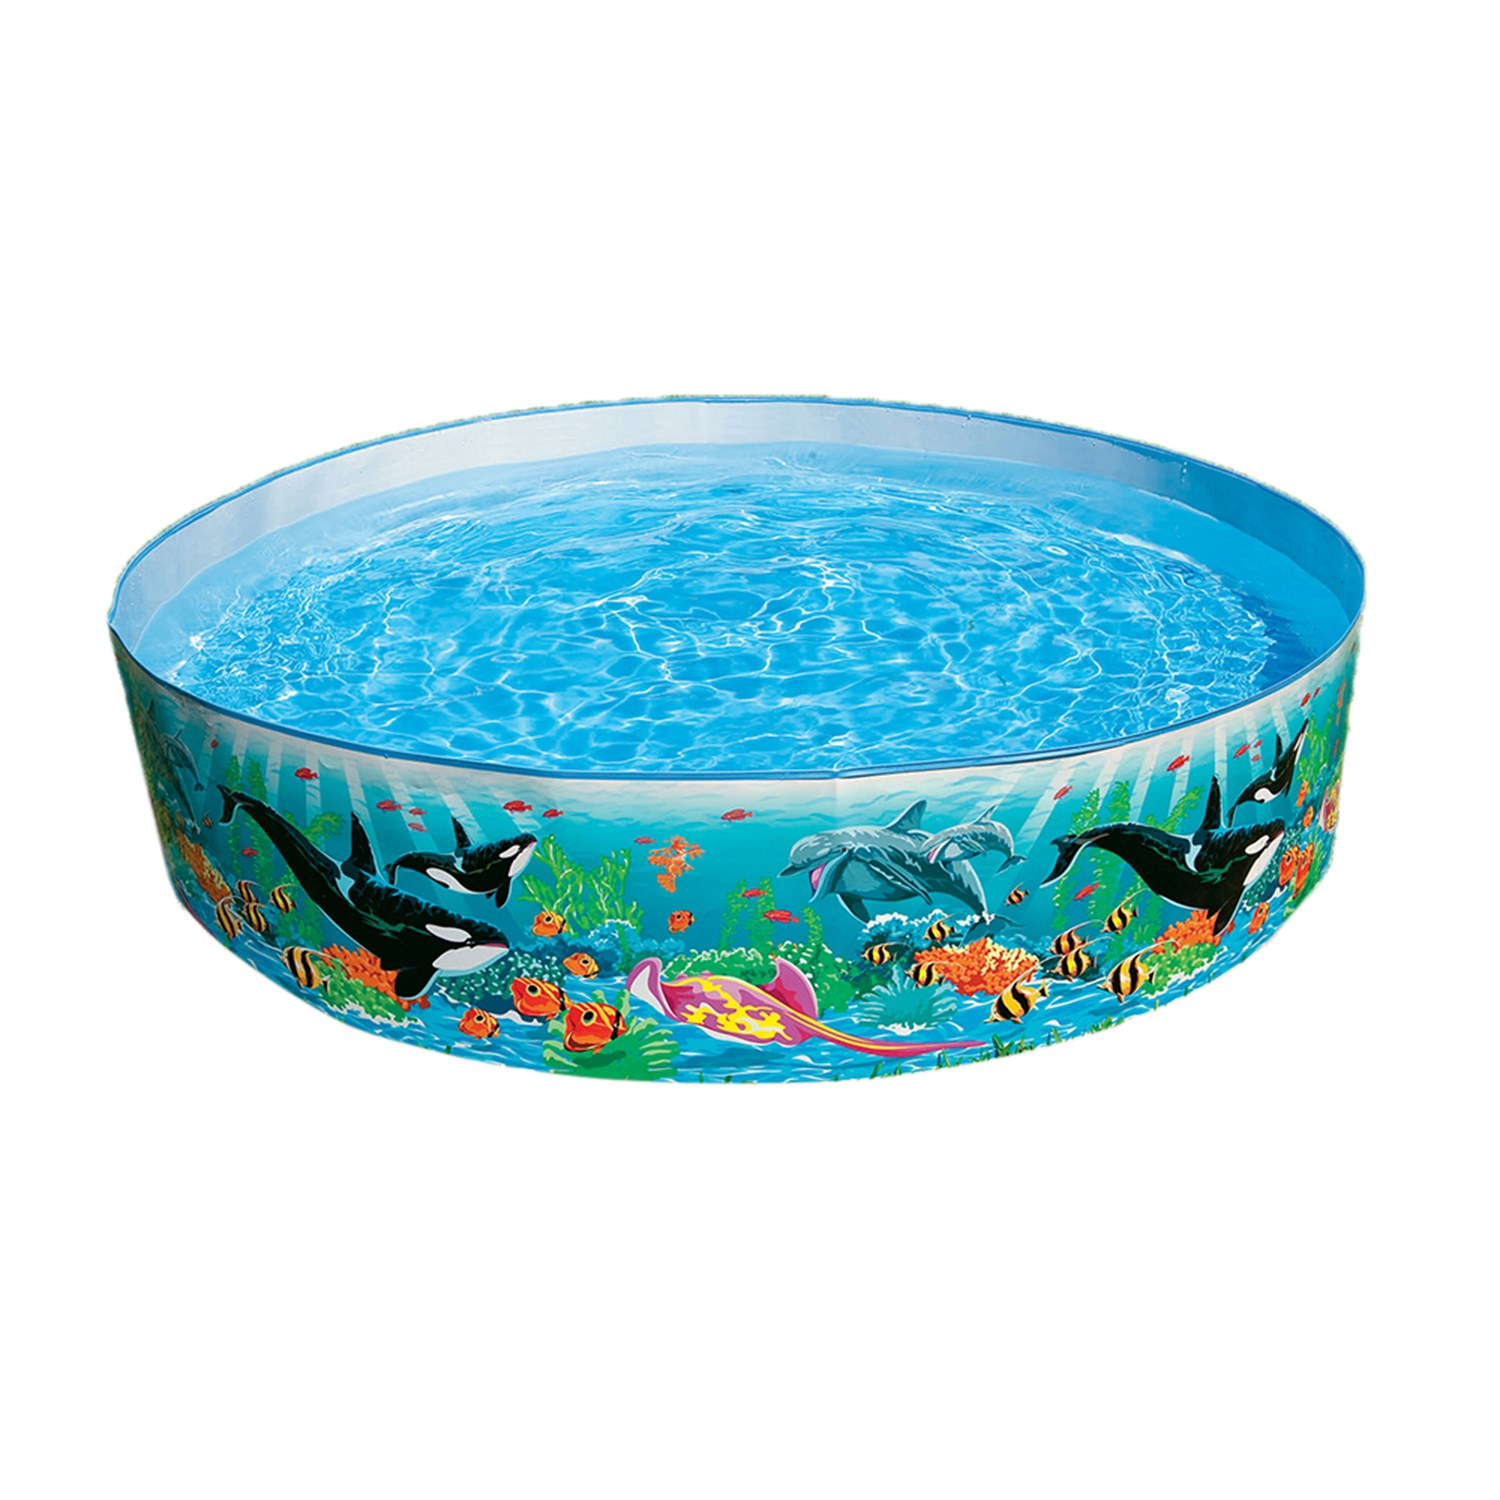 Intex 58461NP Ocean Reef Pool